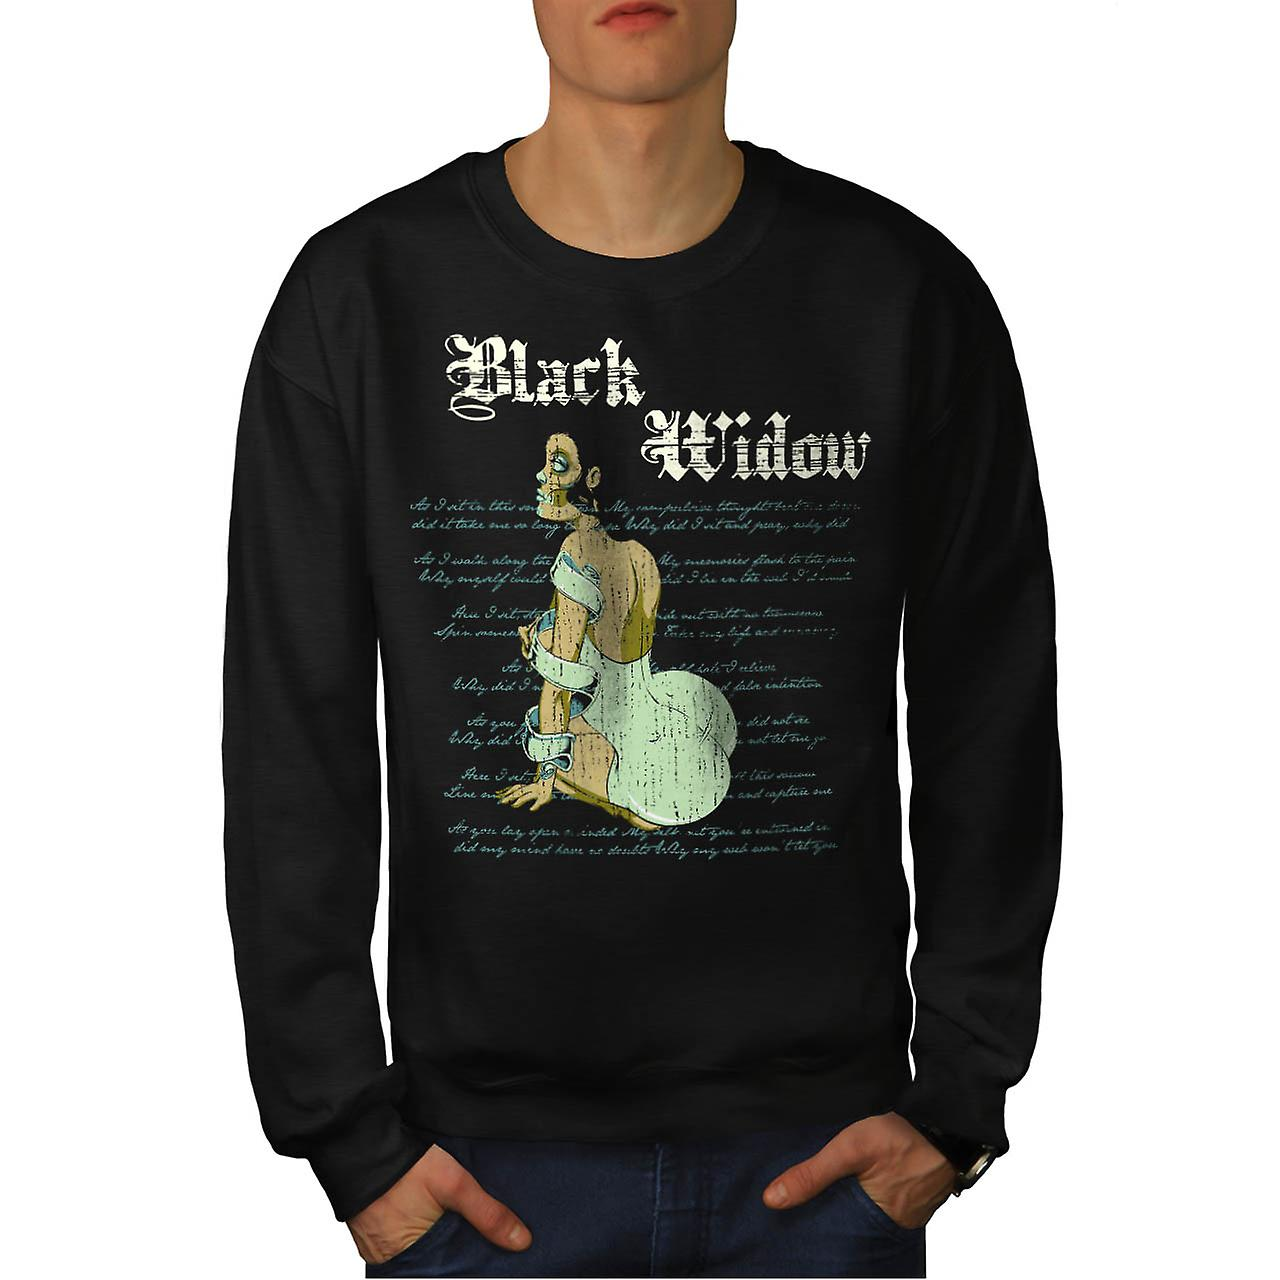 Black Widow Dress Spider forbannelse menn svart Sweatshirt | Wellcoda